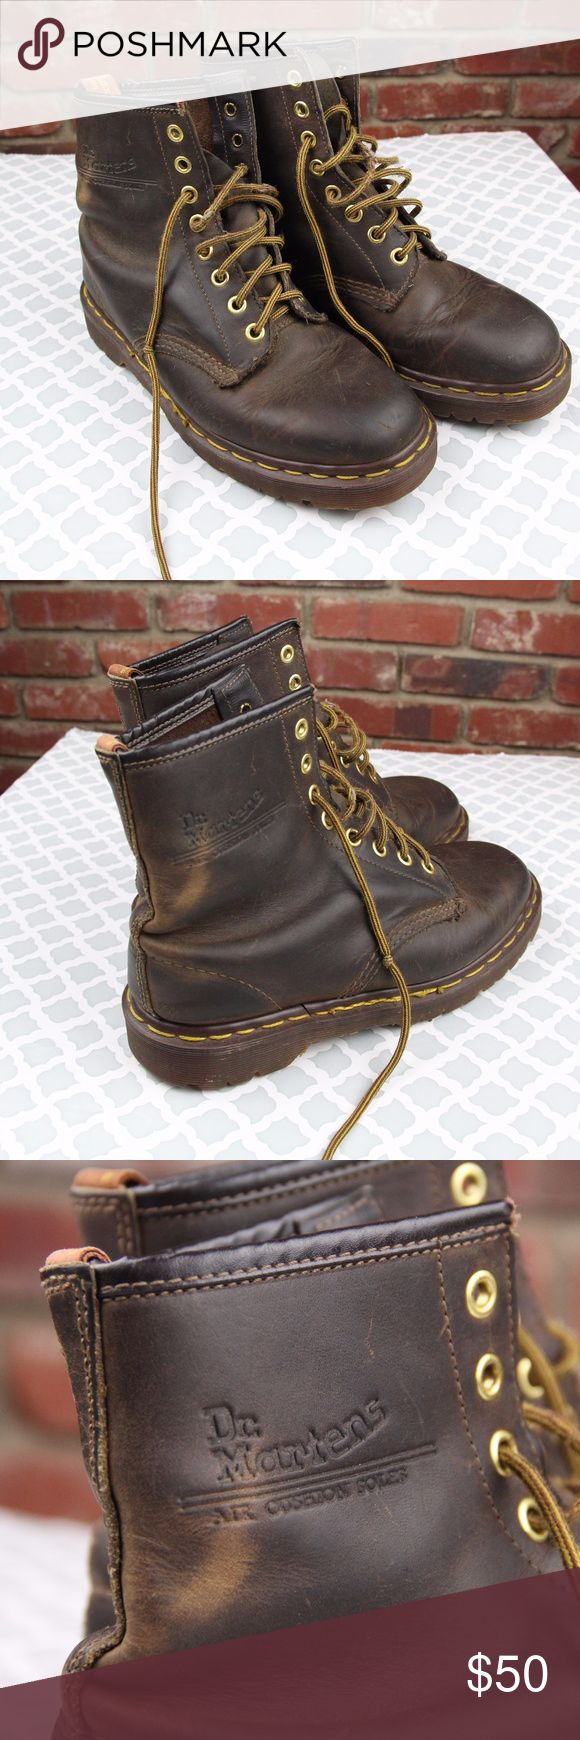 Dr. Marten's Air Wair Boots AW004 Made in England Dr. Marten Air Wair 8 eyelet brown leather boots.  UK size 5, good used condition, plenty of life left in them.    UK size 5 corresponds to a US womens size 7, according to Dr. Marten's website.   Made in England. Dr. Martens Shoes Lace Up Boots